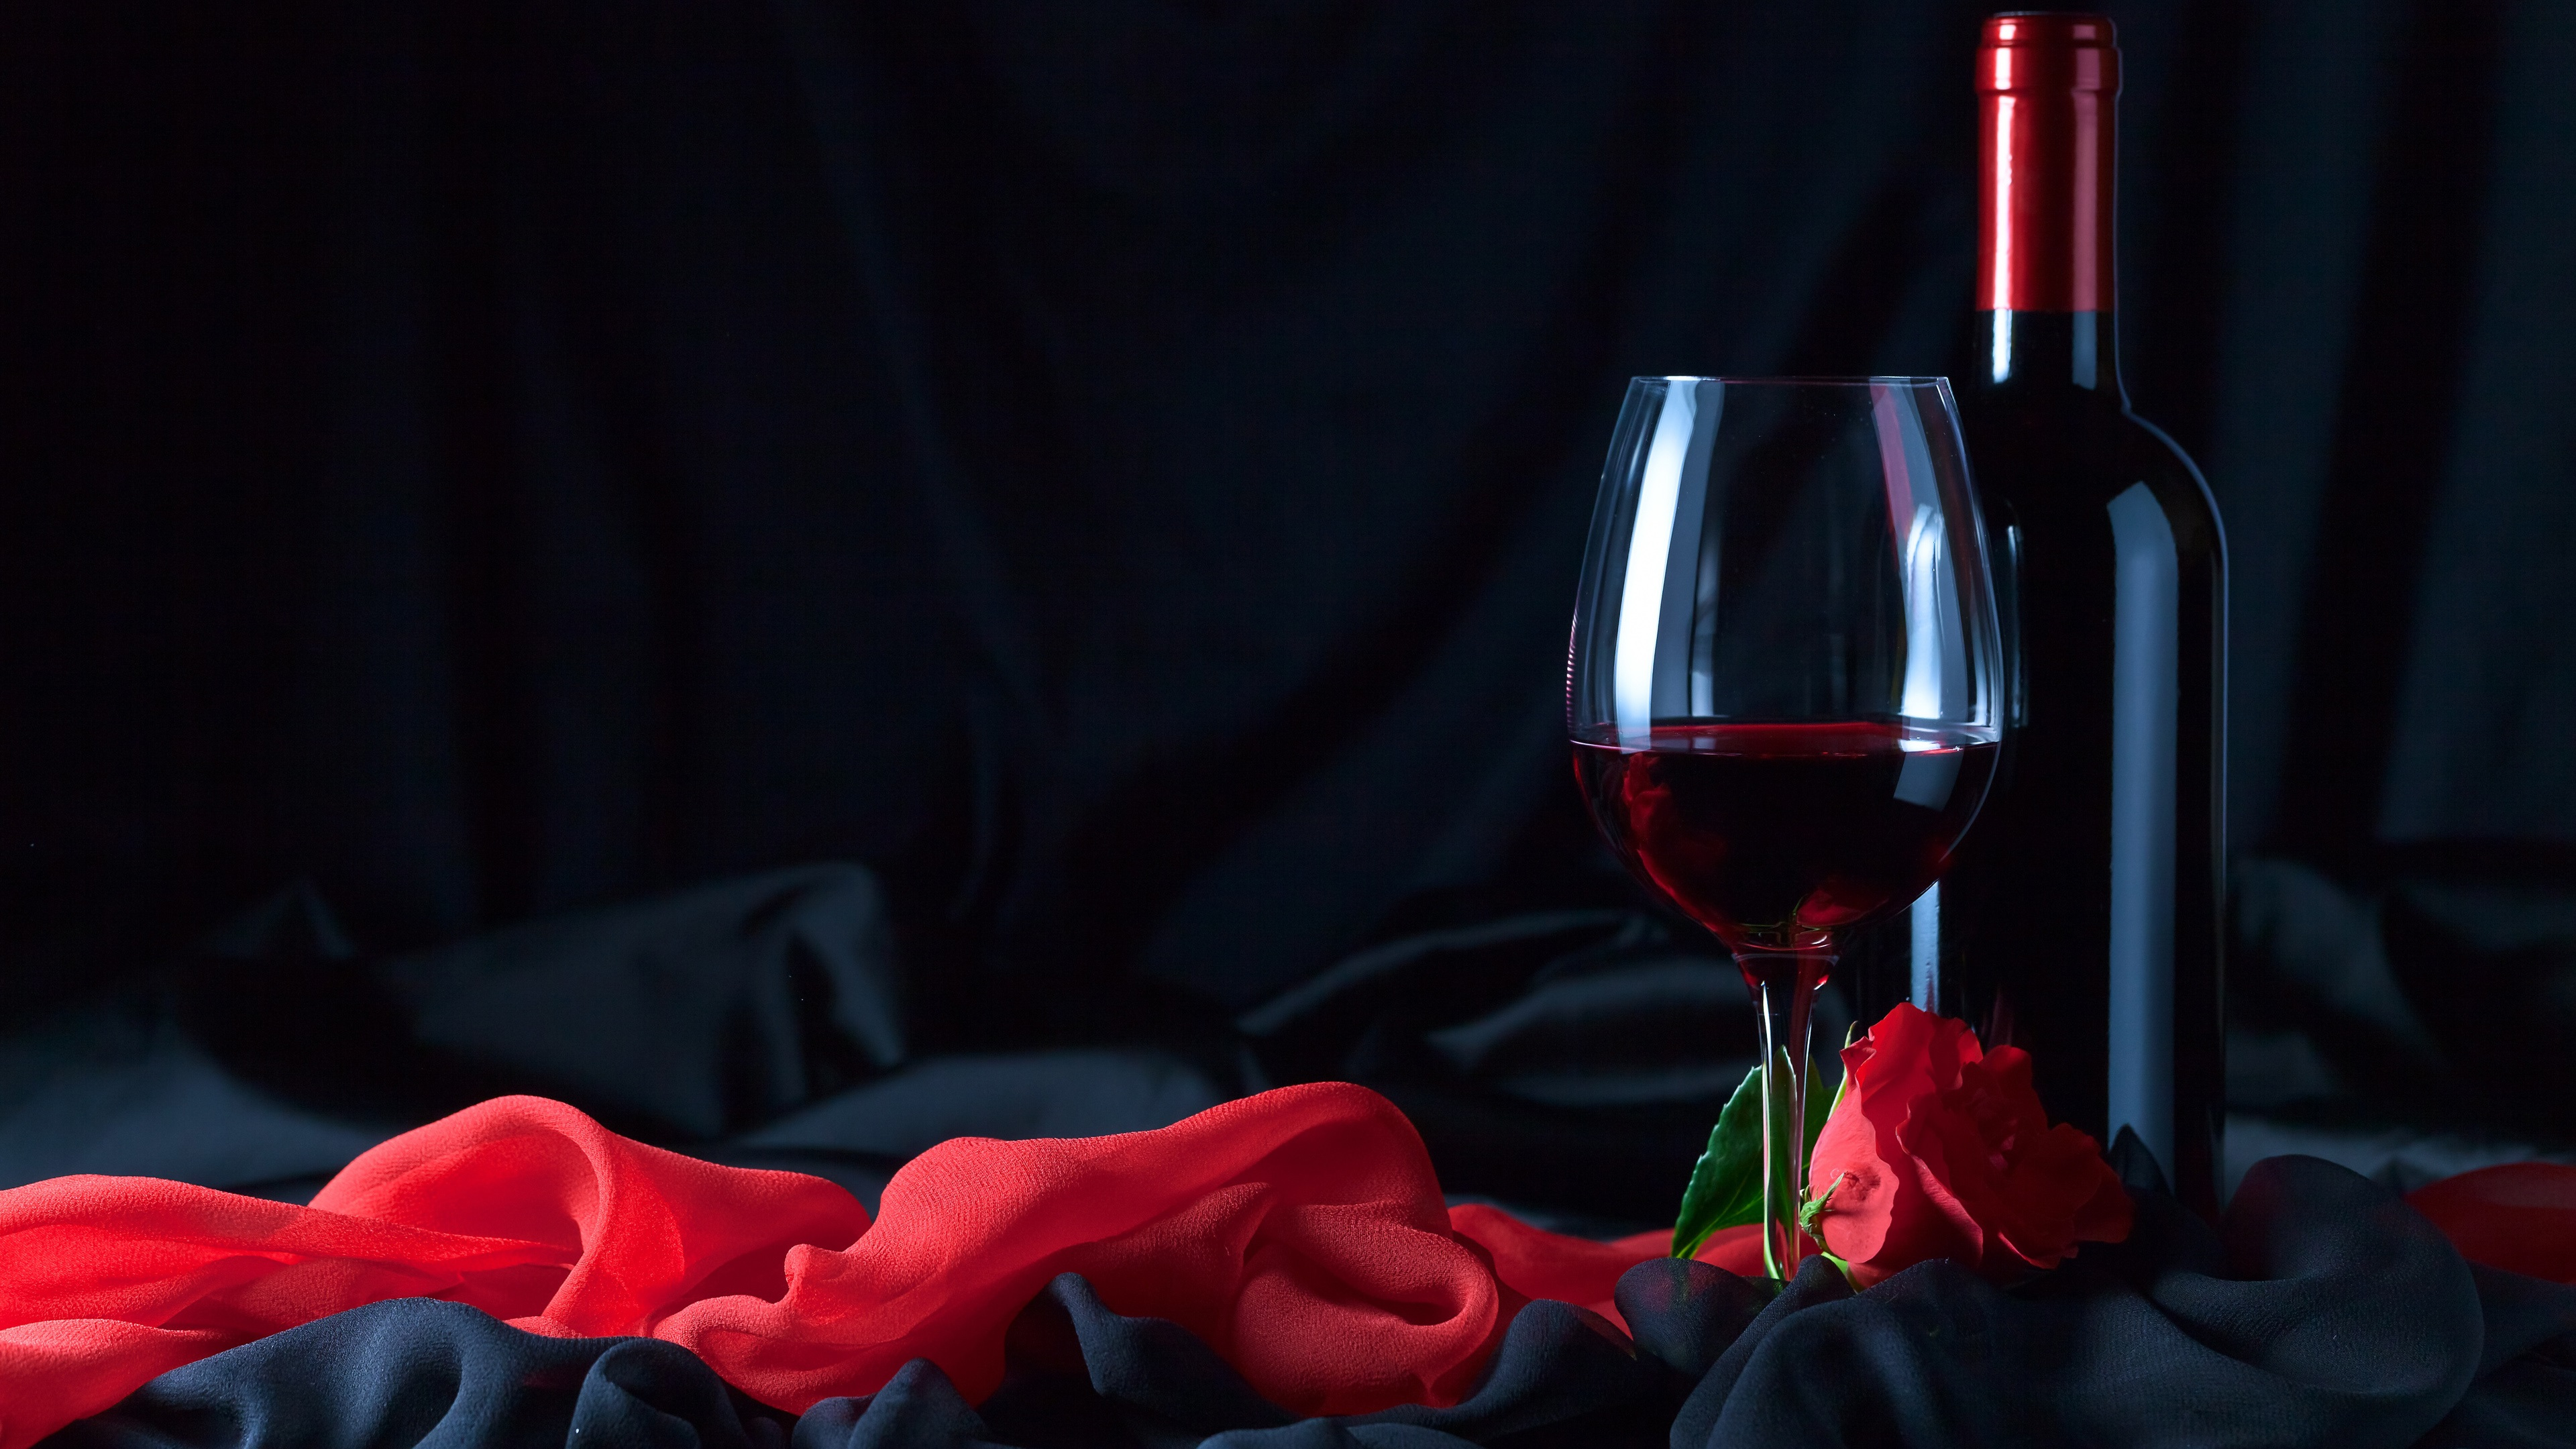 Wallpaper Wine Bottle Glass Cup Red Rose Cloth 3840x2160 Uhd 4k